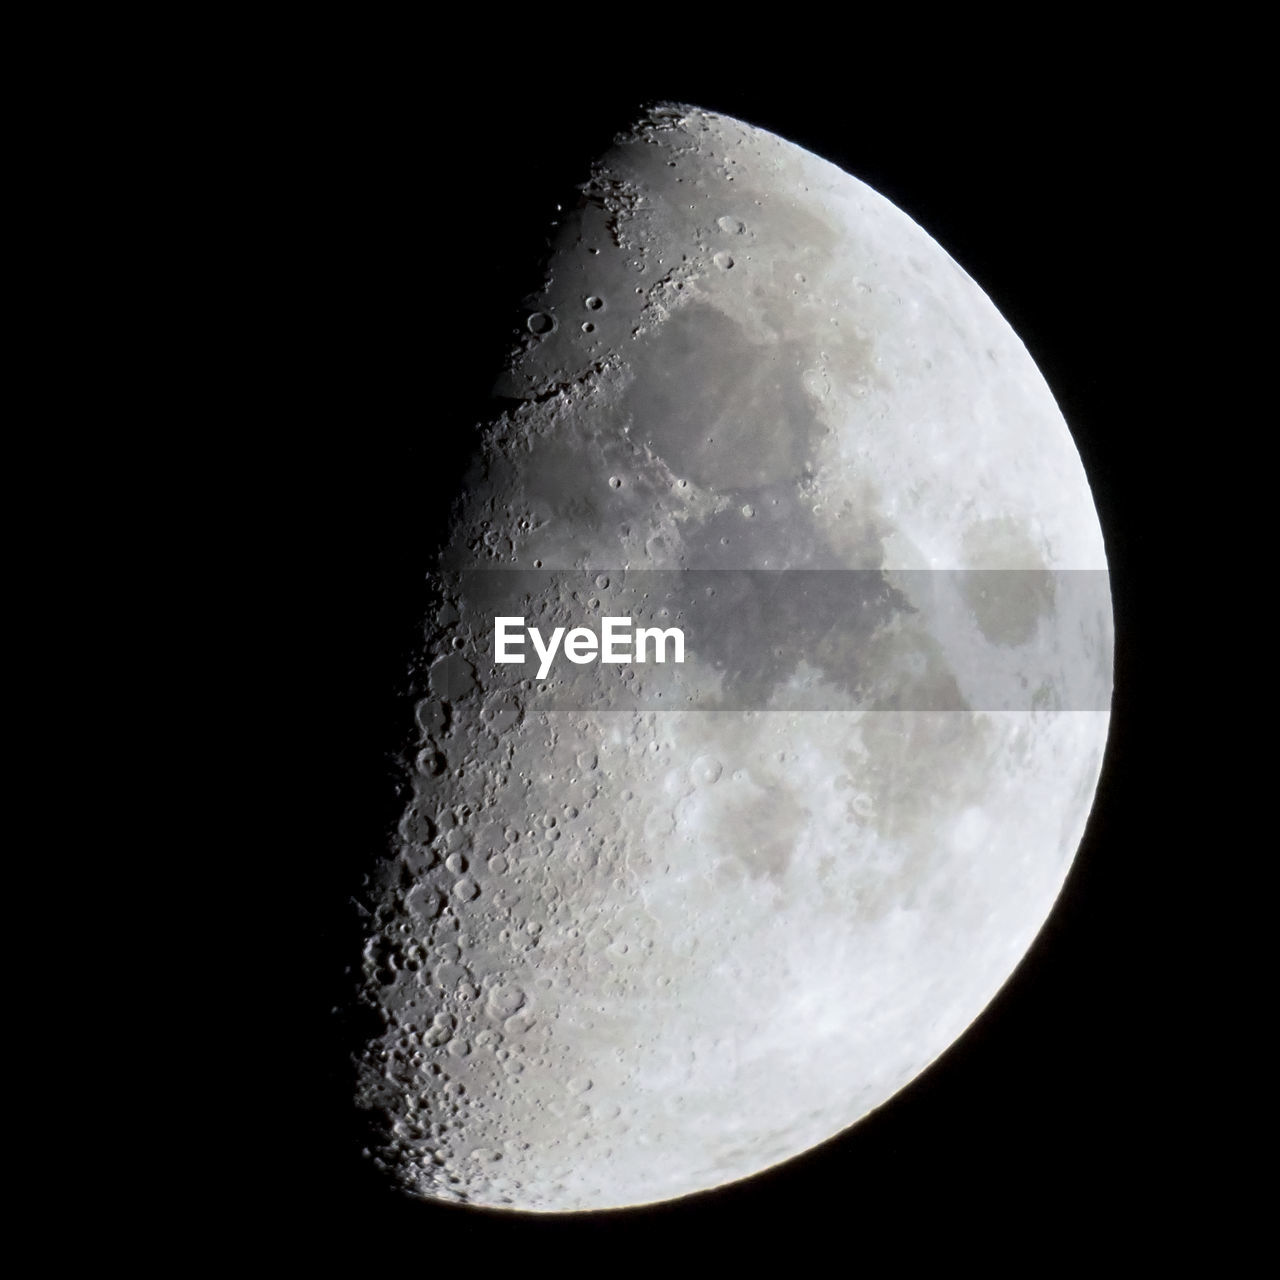 moon, astronomy, night, moon surface, space, sky, planetary moon, no people, close-up, beauty in nature, nature, geometric shape, circle, copy space, shape, black background, low angle view, outdoors, scenics - nature, sphere, space and astronomy